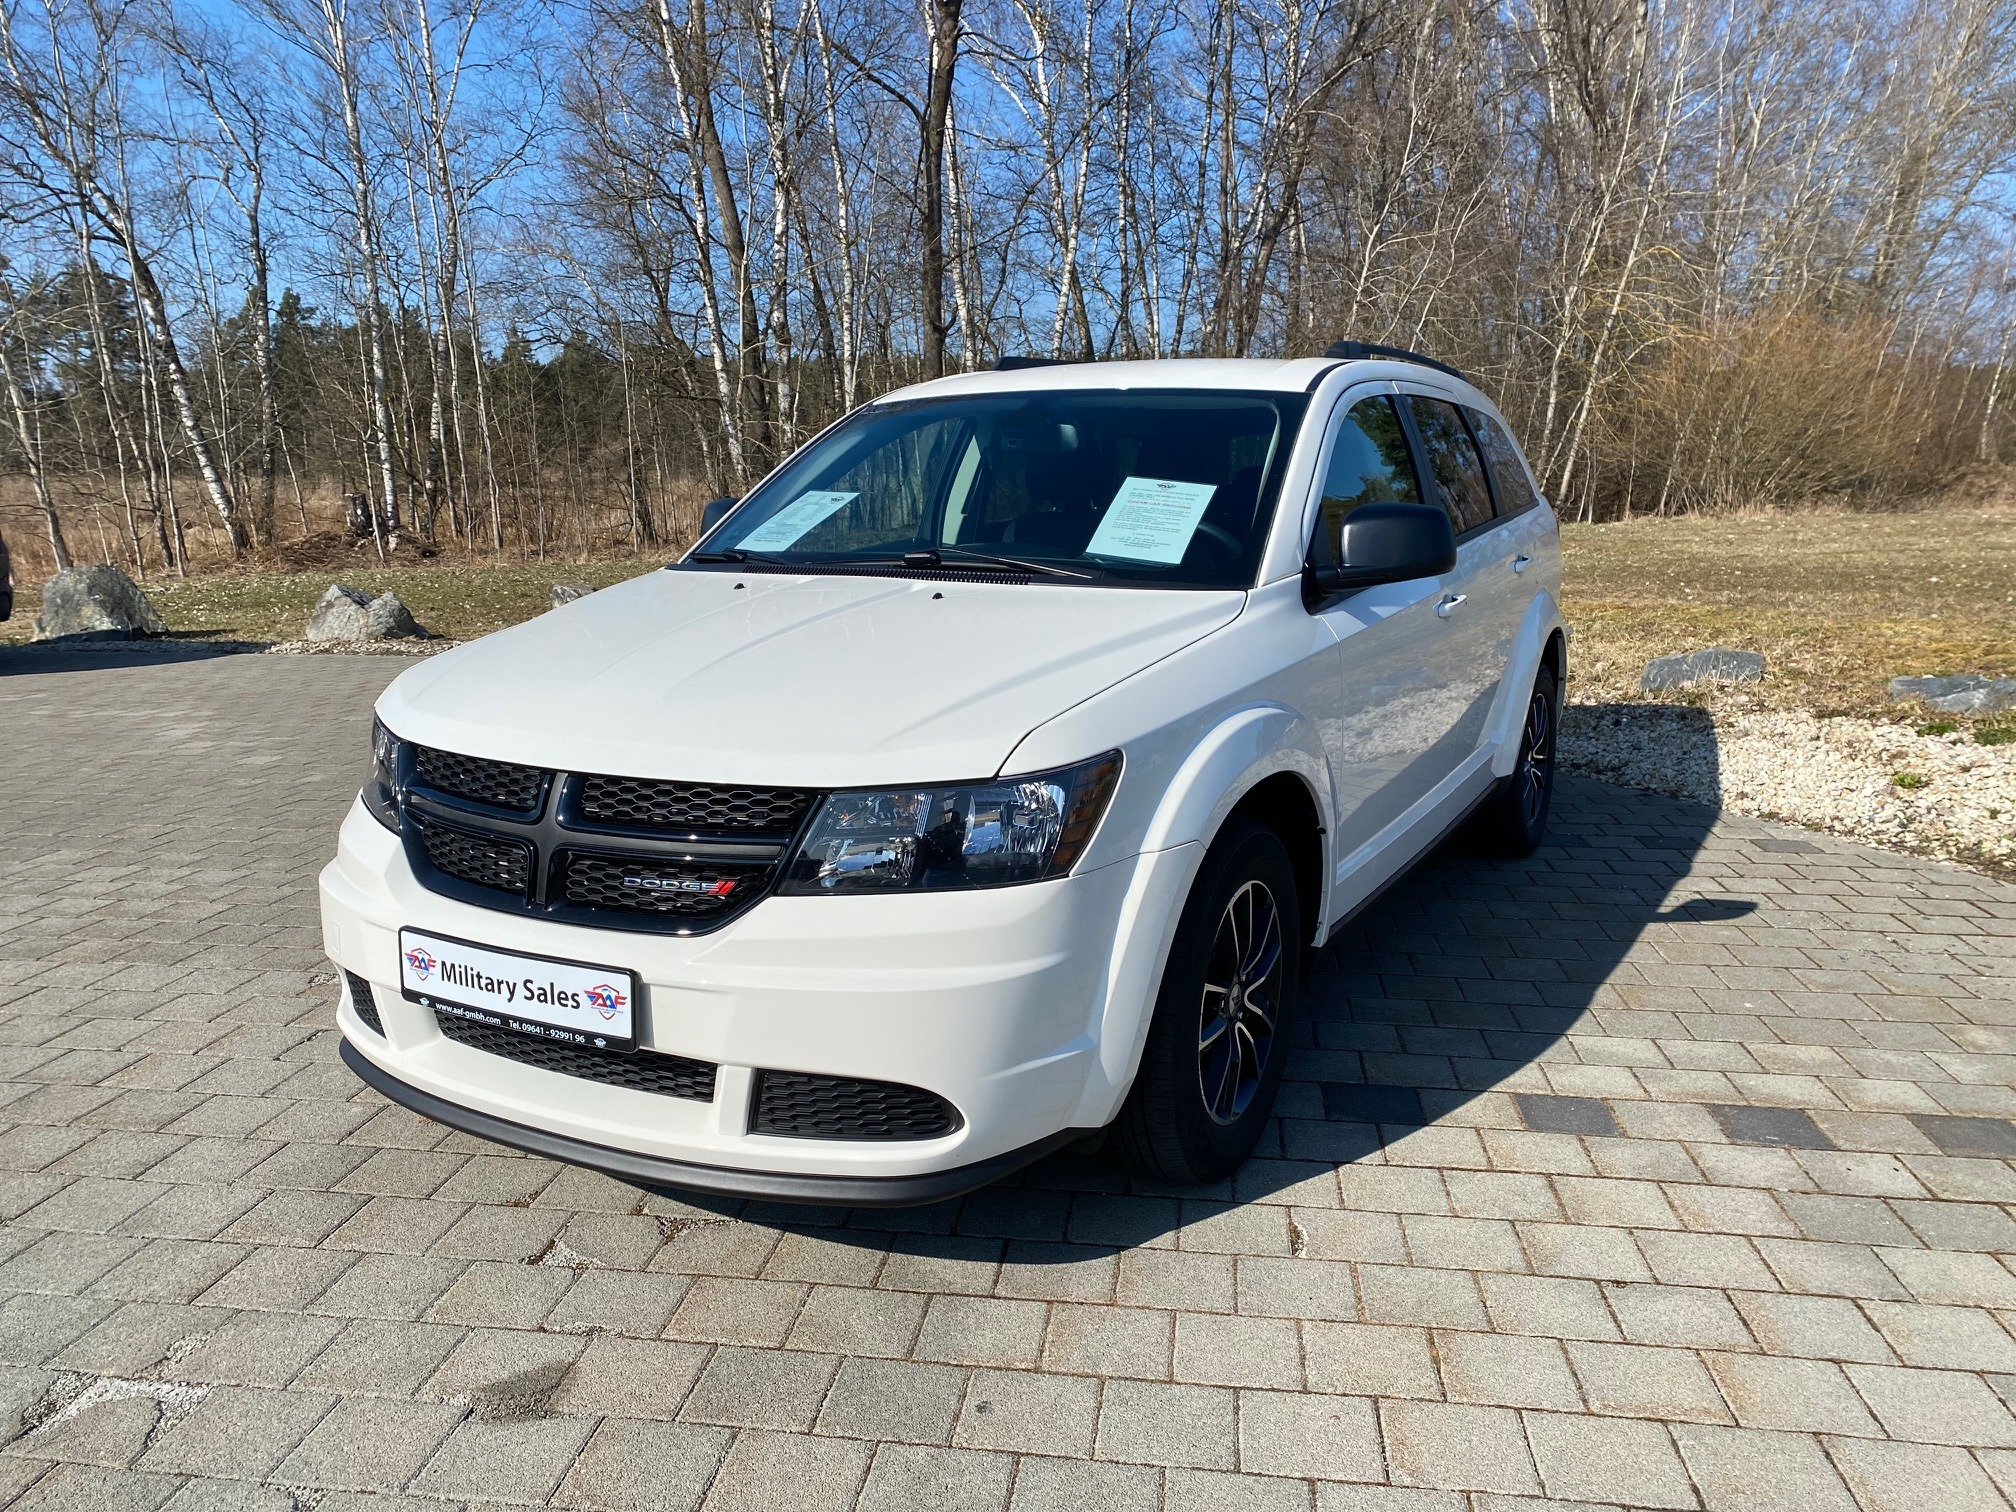 2018 Dodge Journey</br>as low as </br>$149 per paycheck